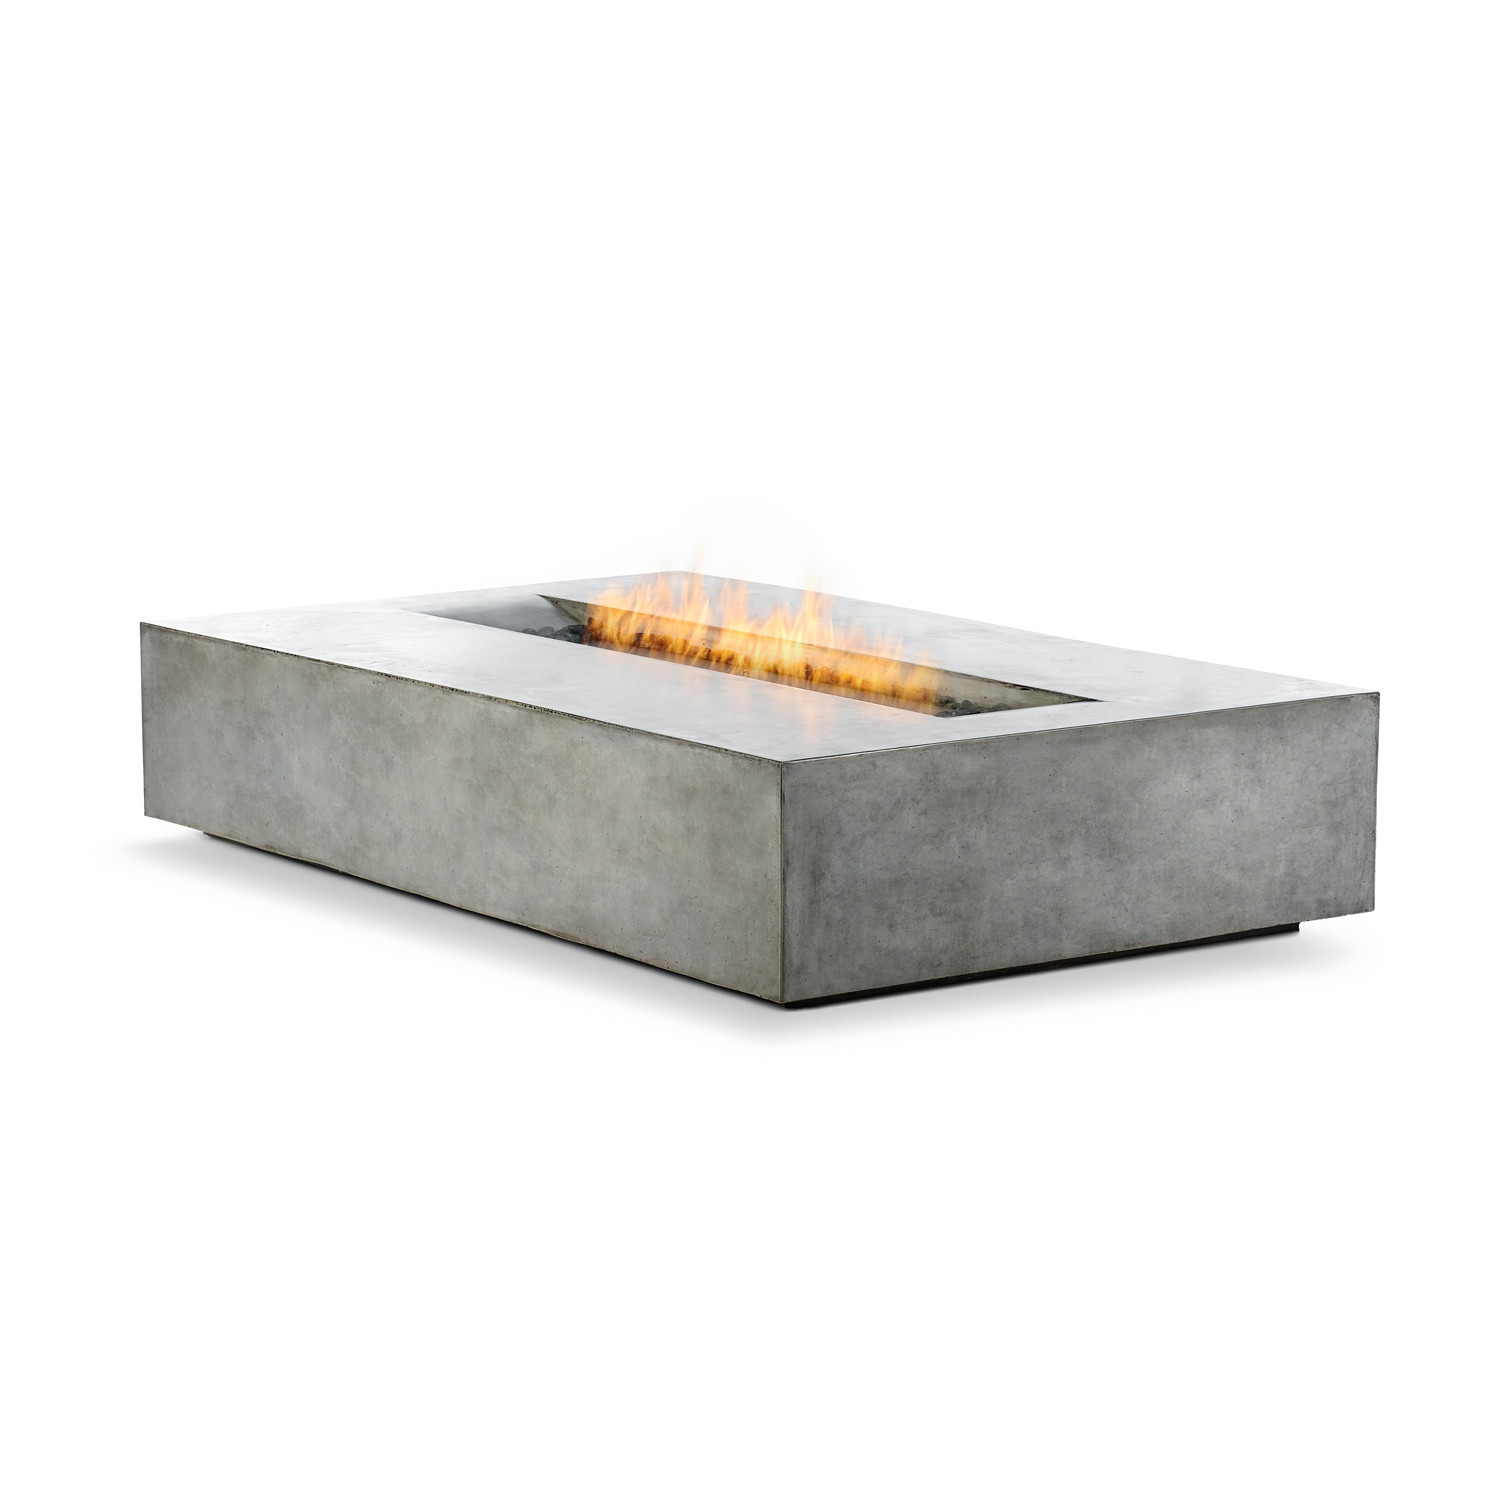 Brown Jordan Fires Flo Fire Pit Coffee Table Black Eco